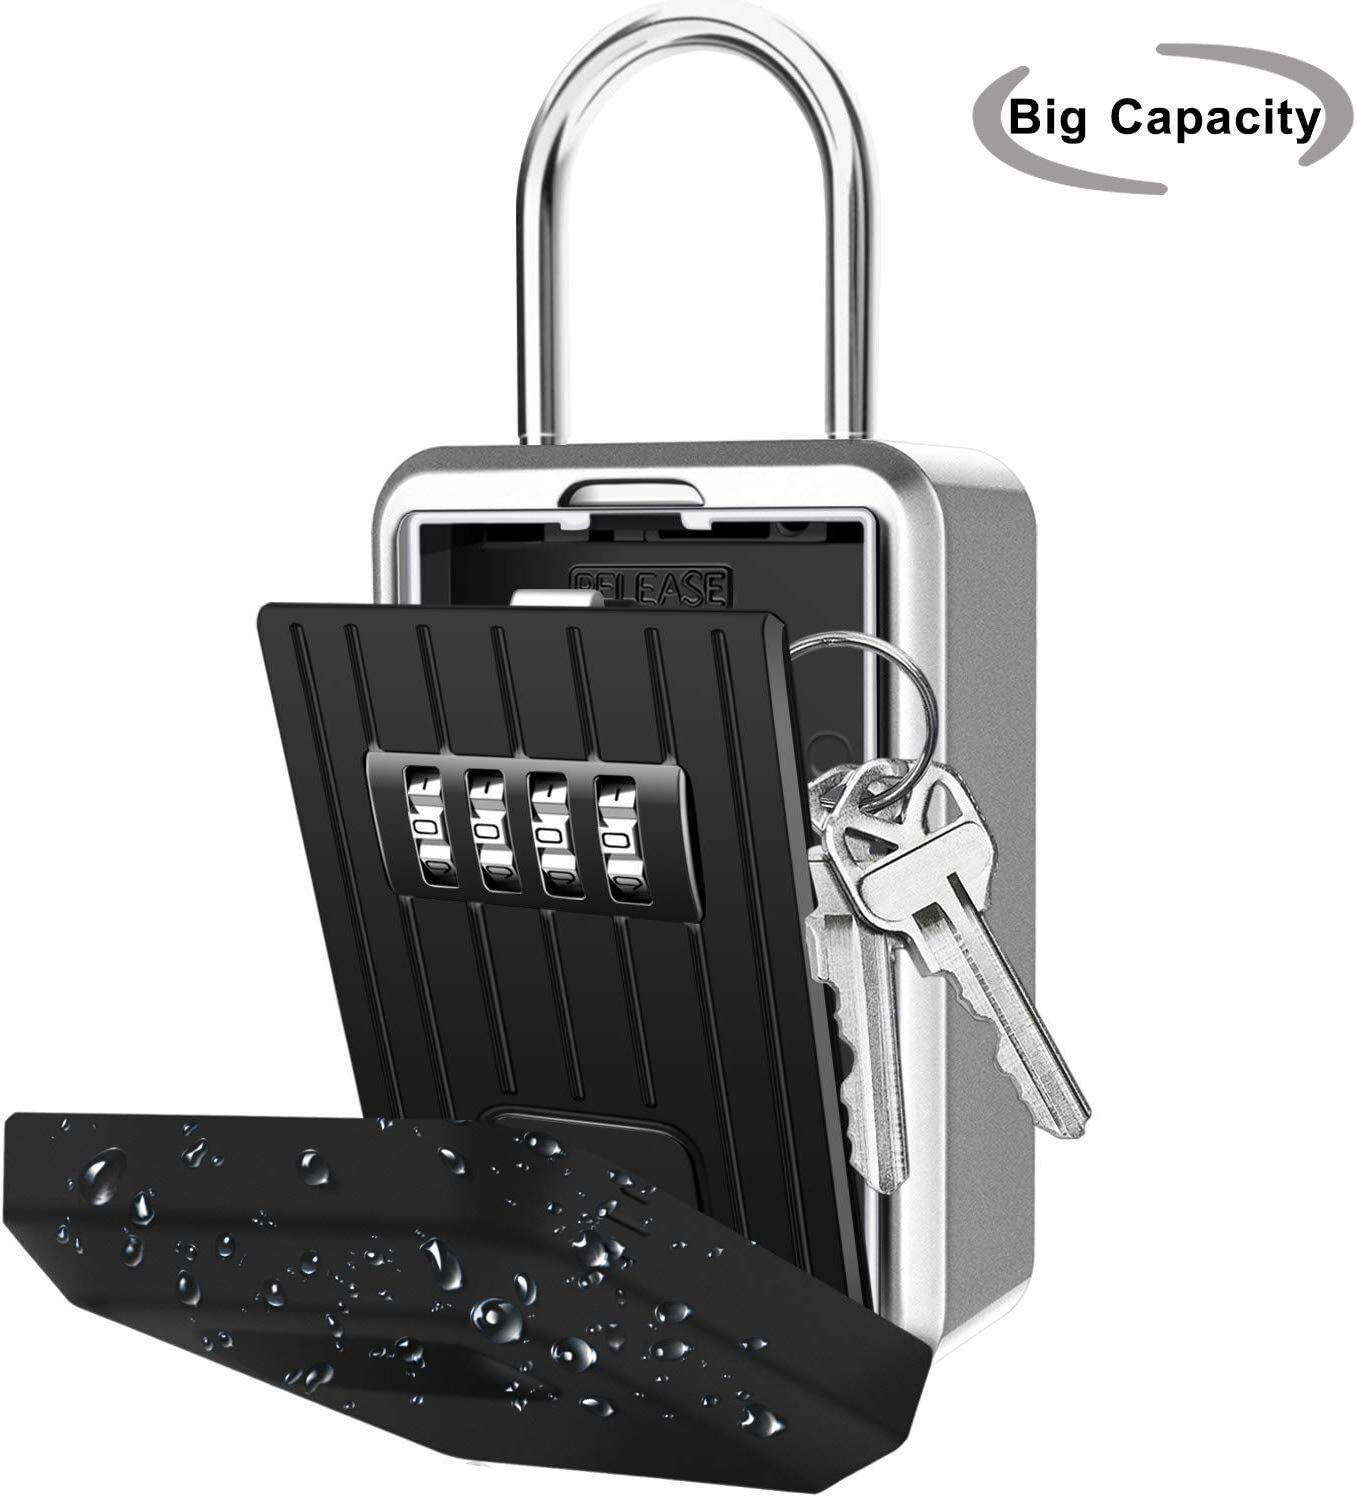 Key Lock Box, Large-Capacity Wall-Mounted Key Safe (with Plastic Waterproof Cover), Key Storage Box (with 4-bit Combination Lock), for Outdoor Home Office Garage, School Gym, Spare Room Key (Black)